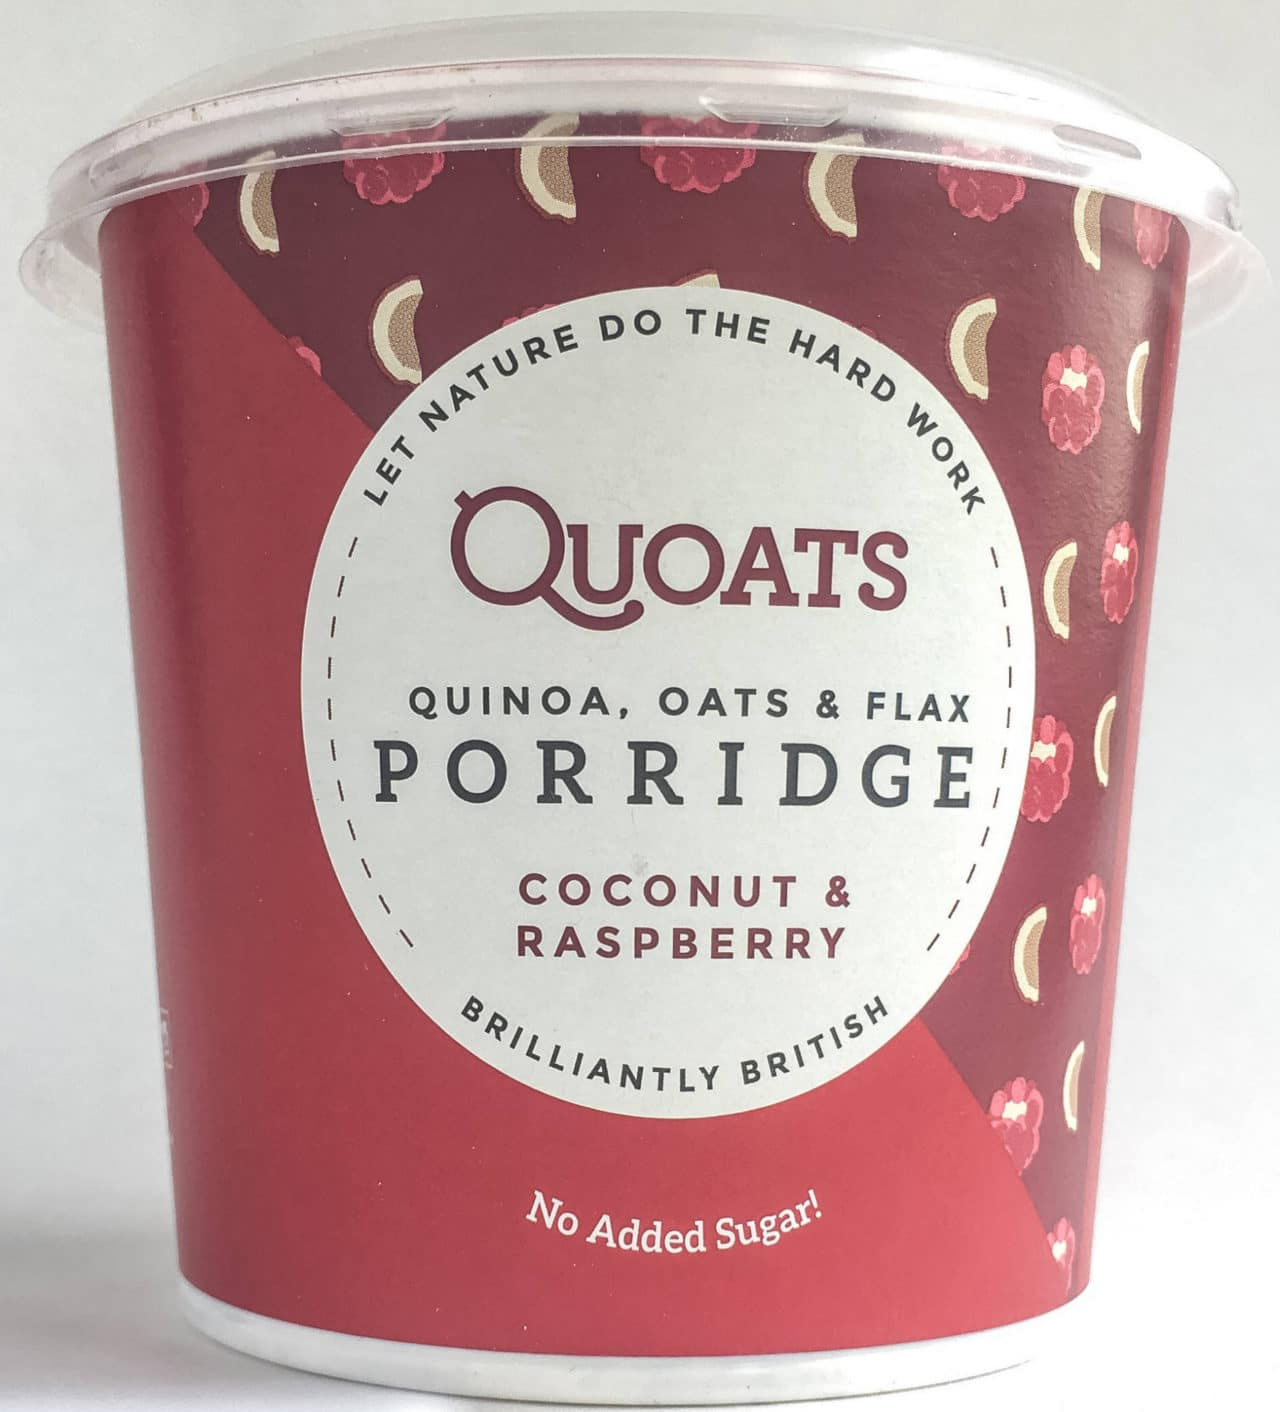 quoats-coconut-raspberry-image-300dpi